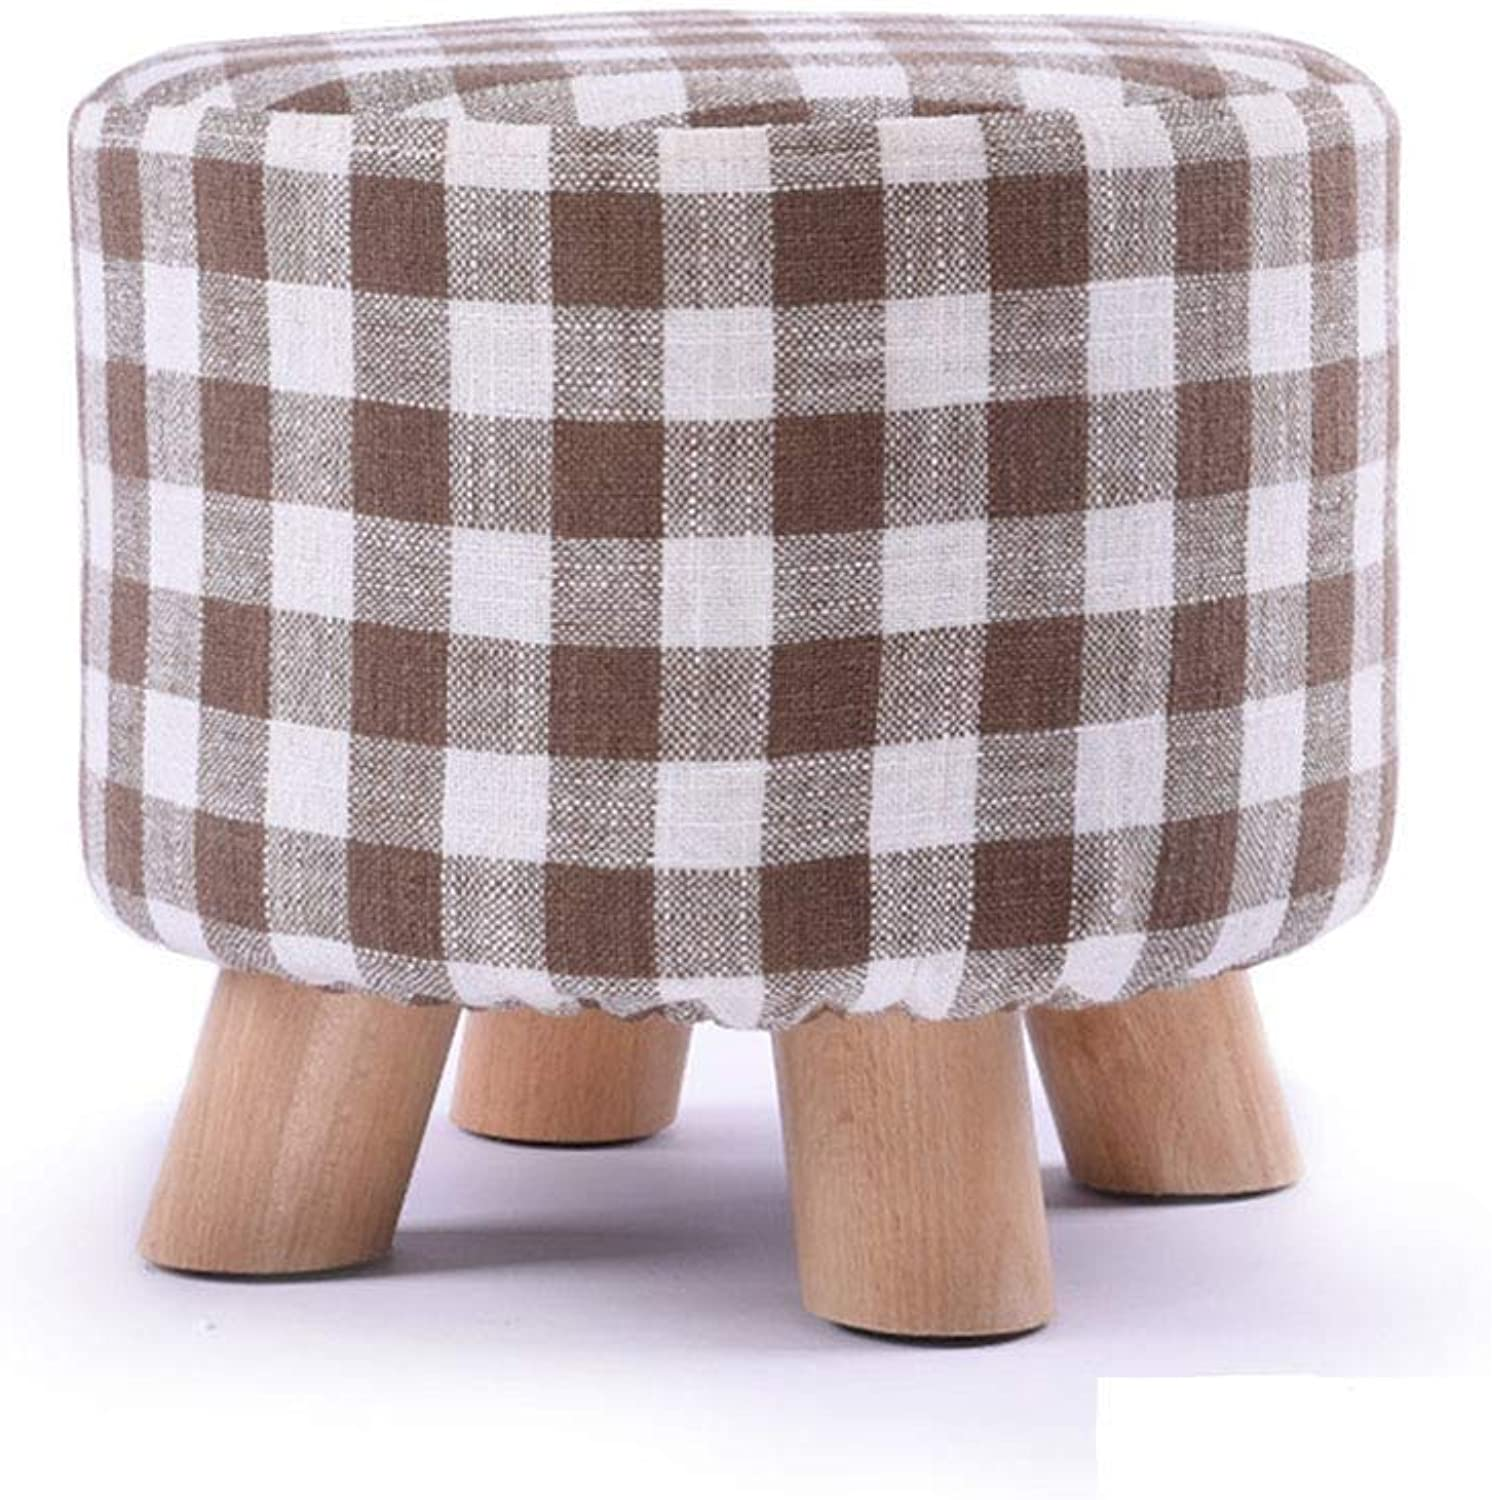 Fashion Creative Solid Wood Sofa Bench Fabric Change shoes Bench Home Bench Living Room FENPING (color   Brown)